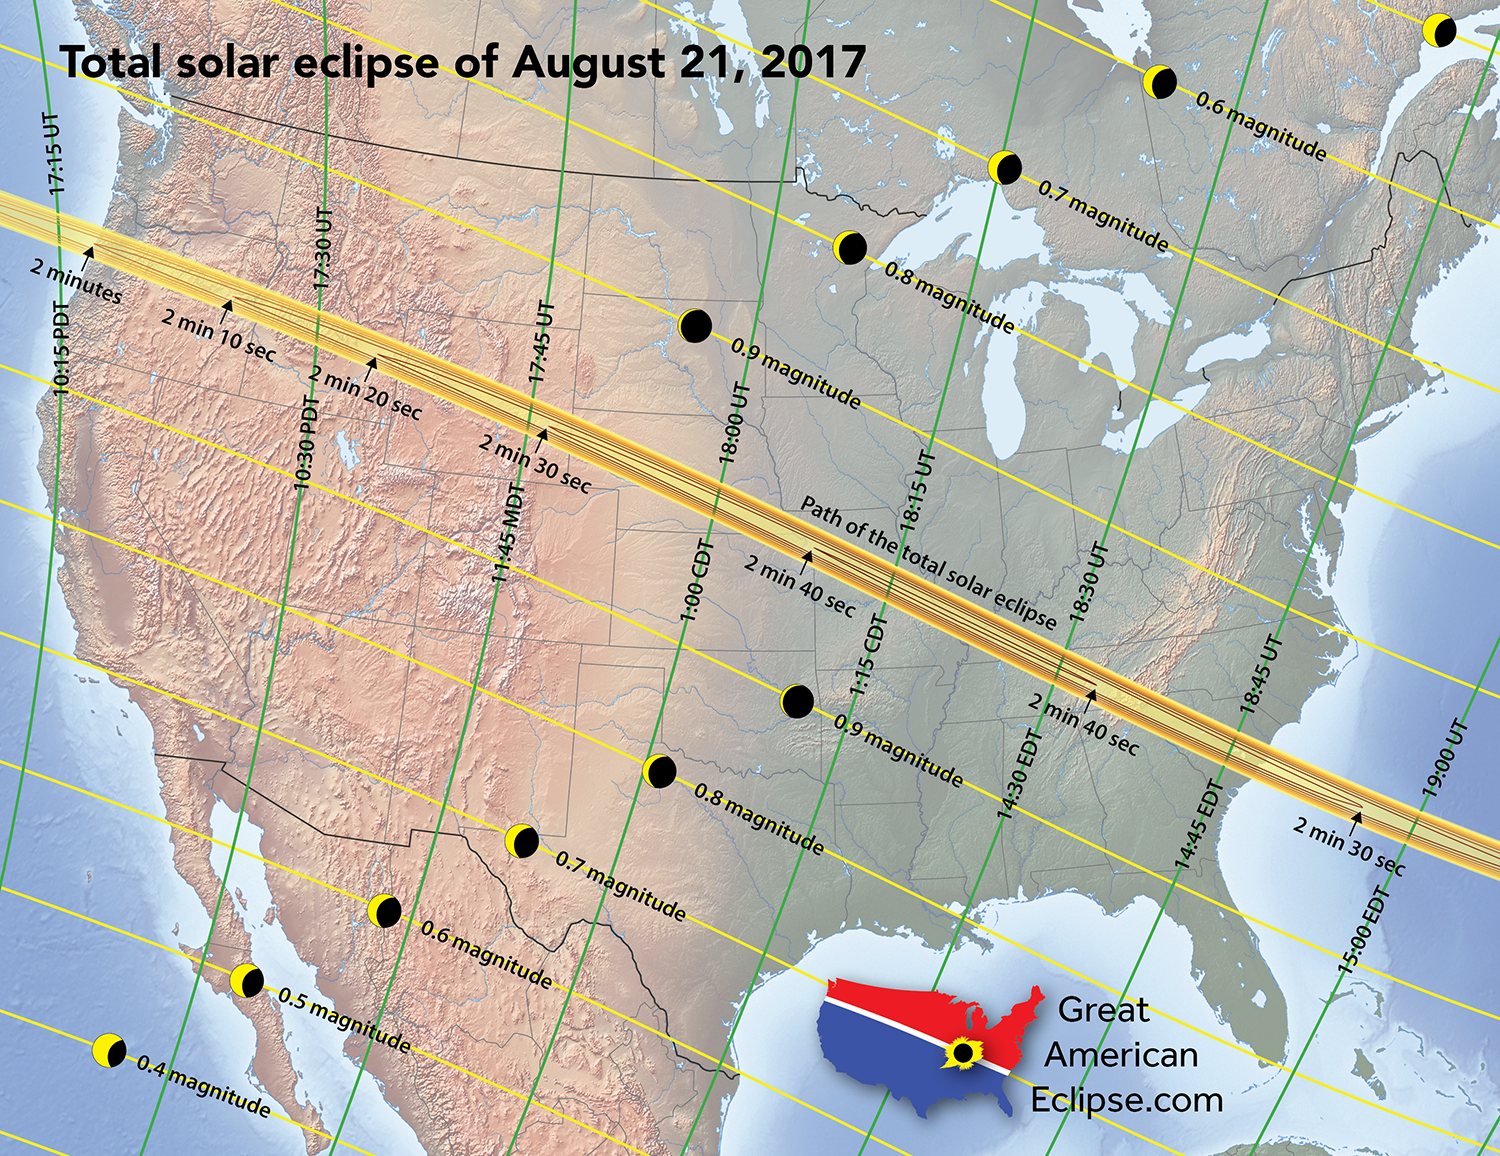 Us Solar Eclipse Map National maps — Total solar eclipse of April 8, 2024